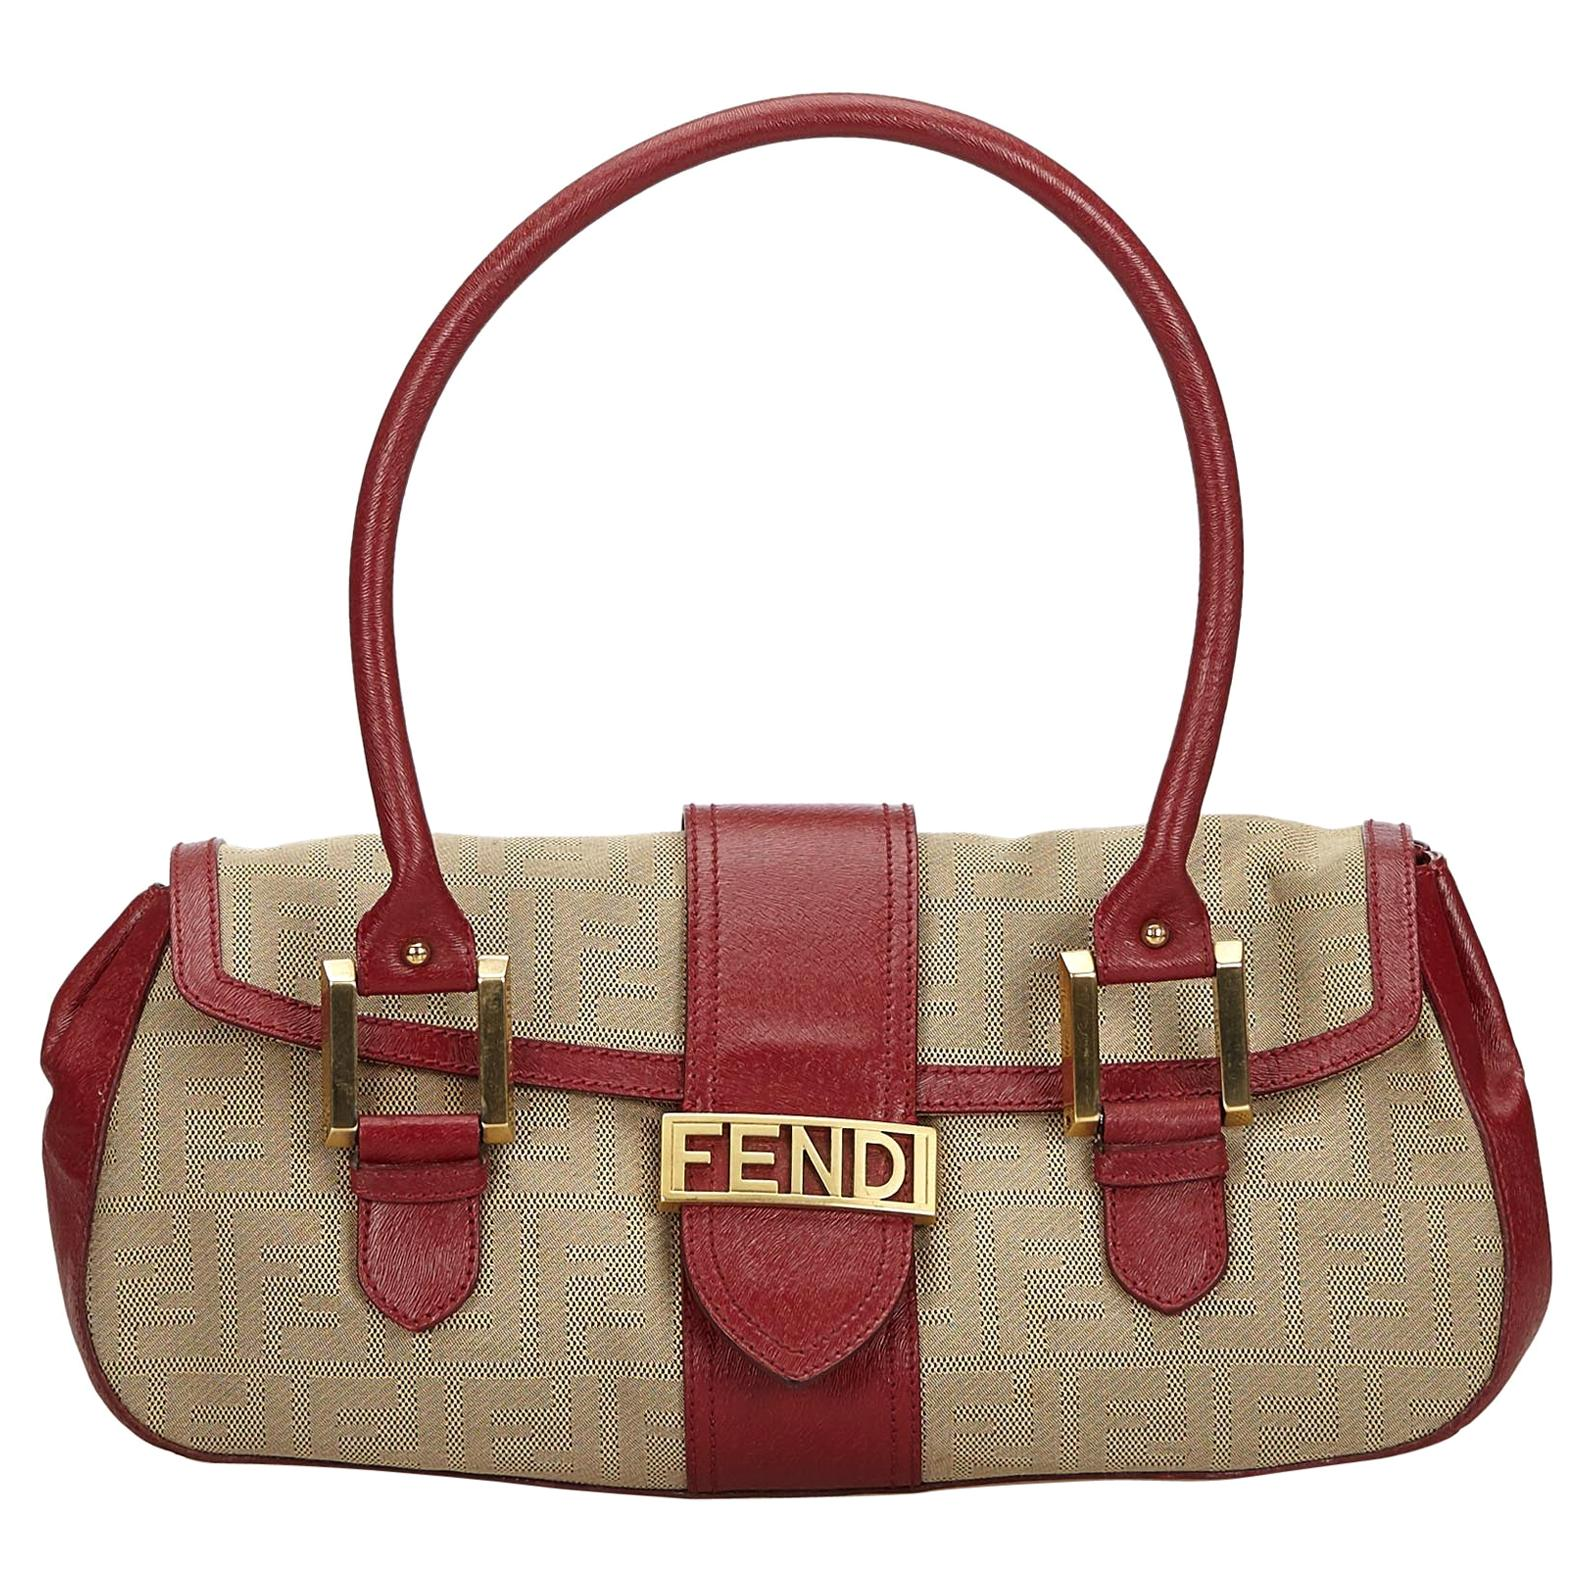 Vintage For Fendi Bags 1stdibs 256 Sale At Top Handle 29IDEH